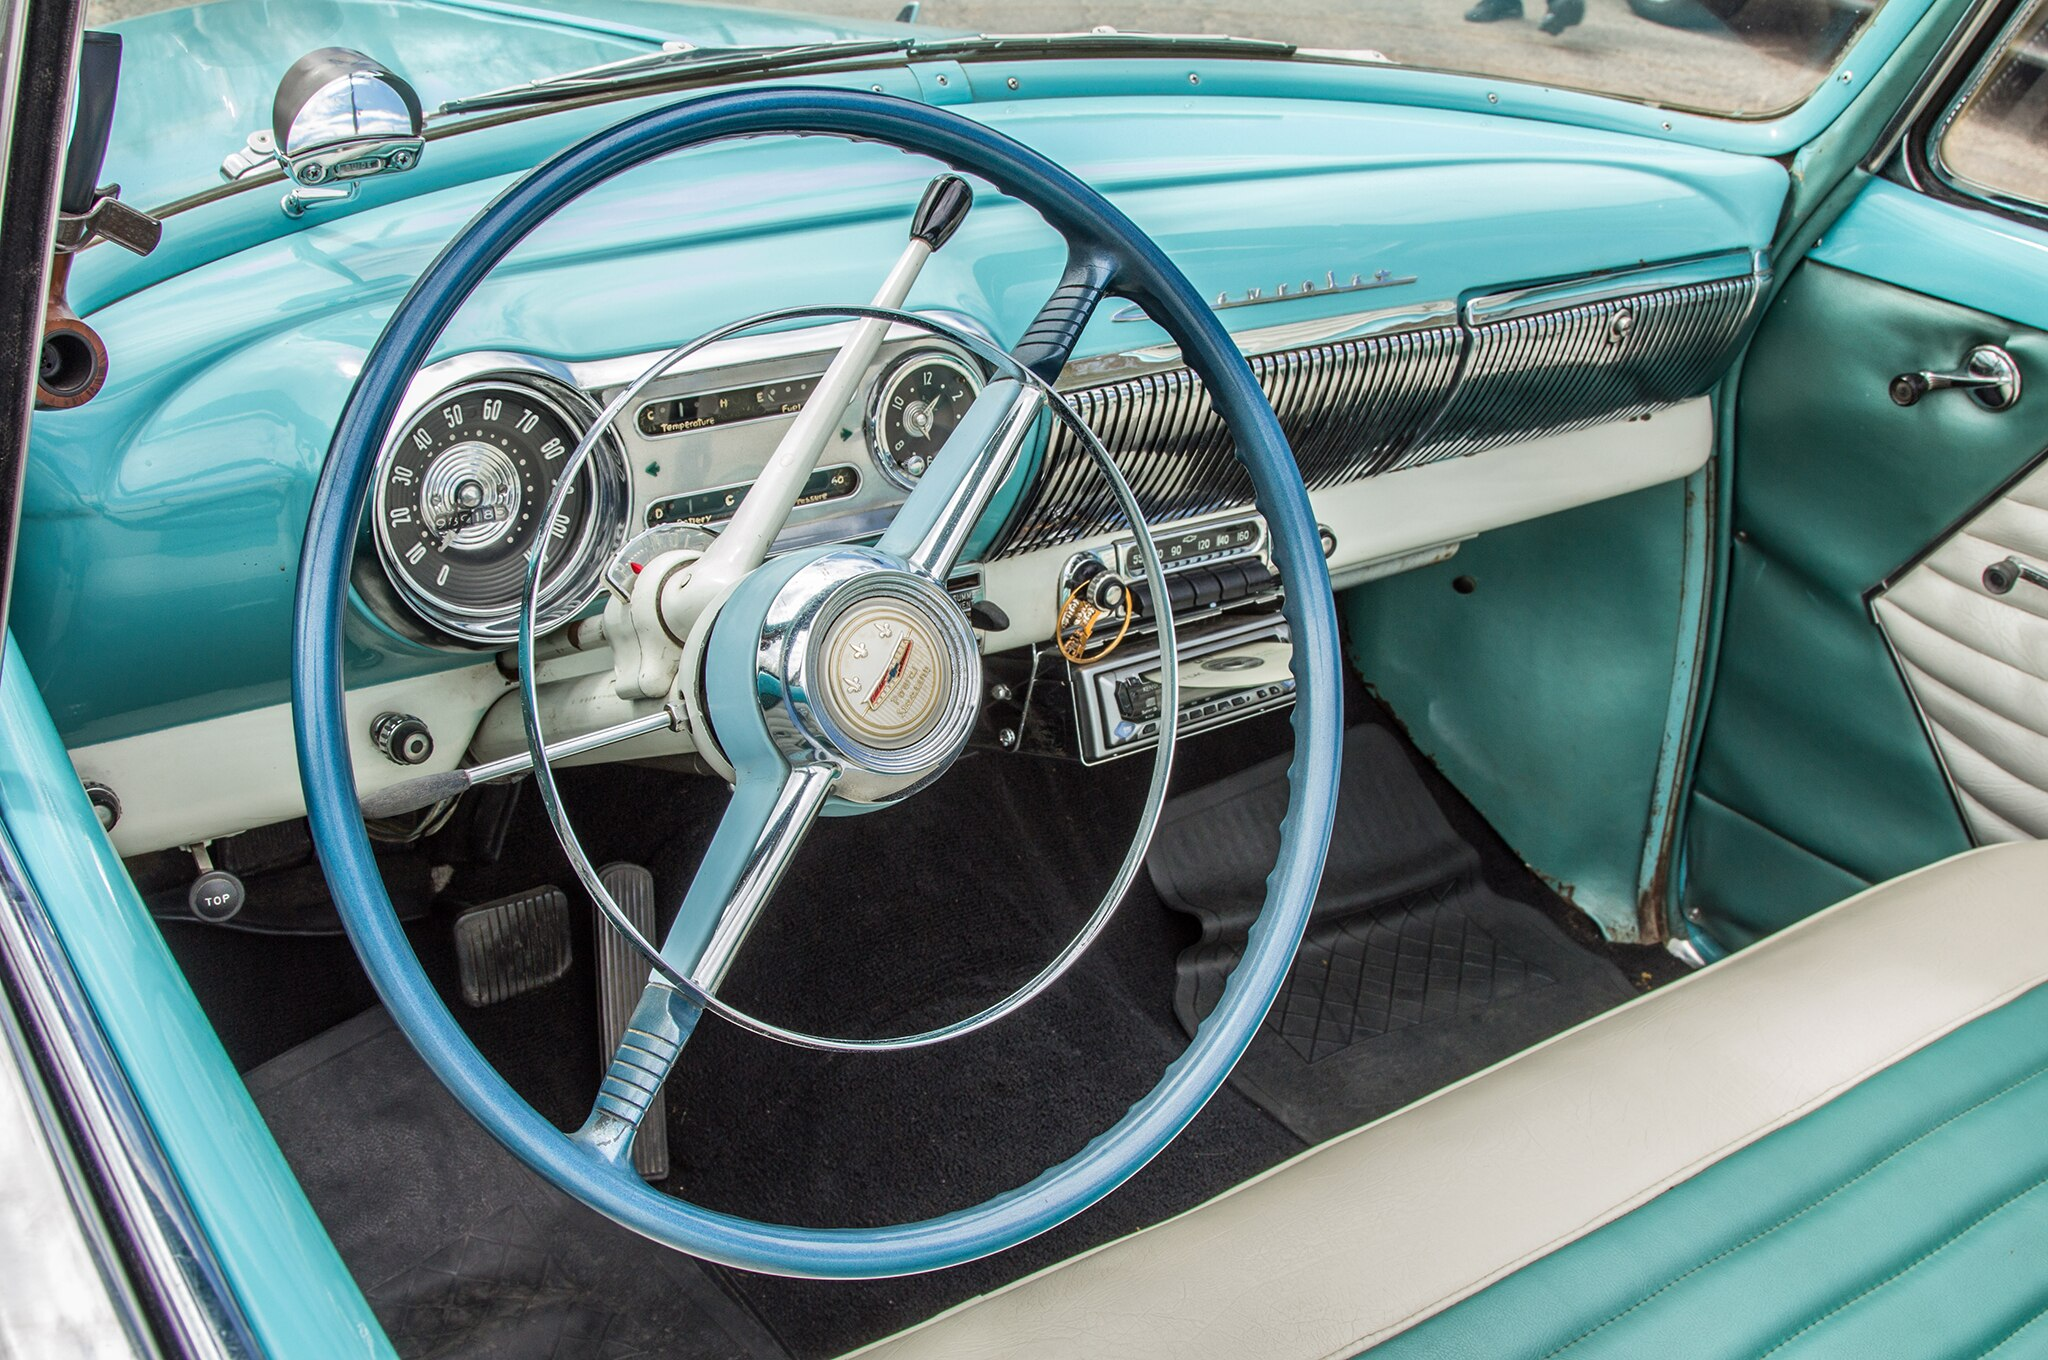 1954 chevrolet 235 convertible interior steering wheel1954 chevrolet 235 convertible interior steering wheel1954 chevrolet 235 convertible